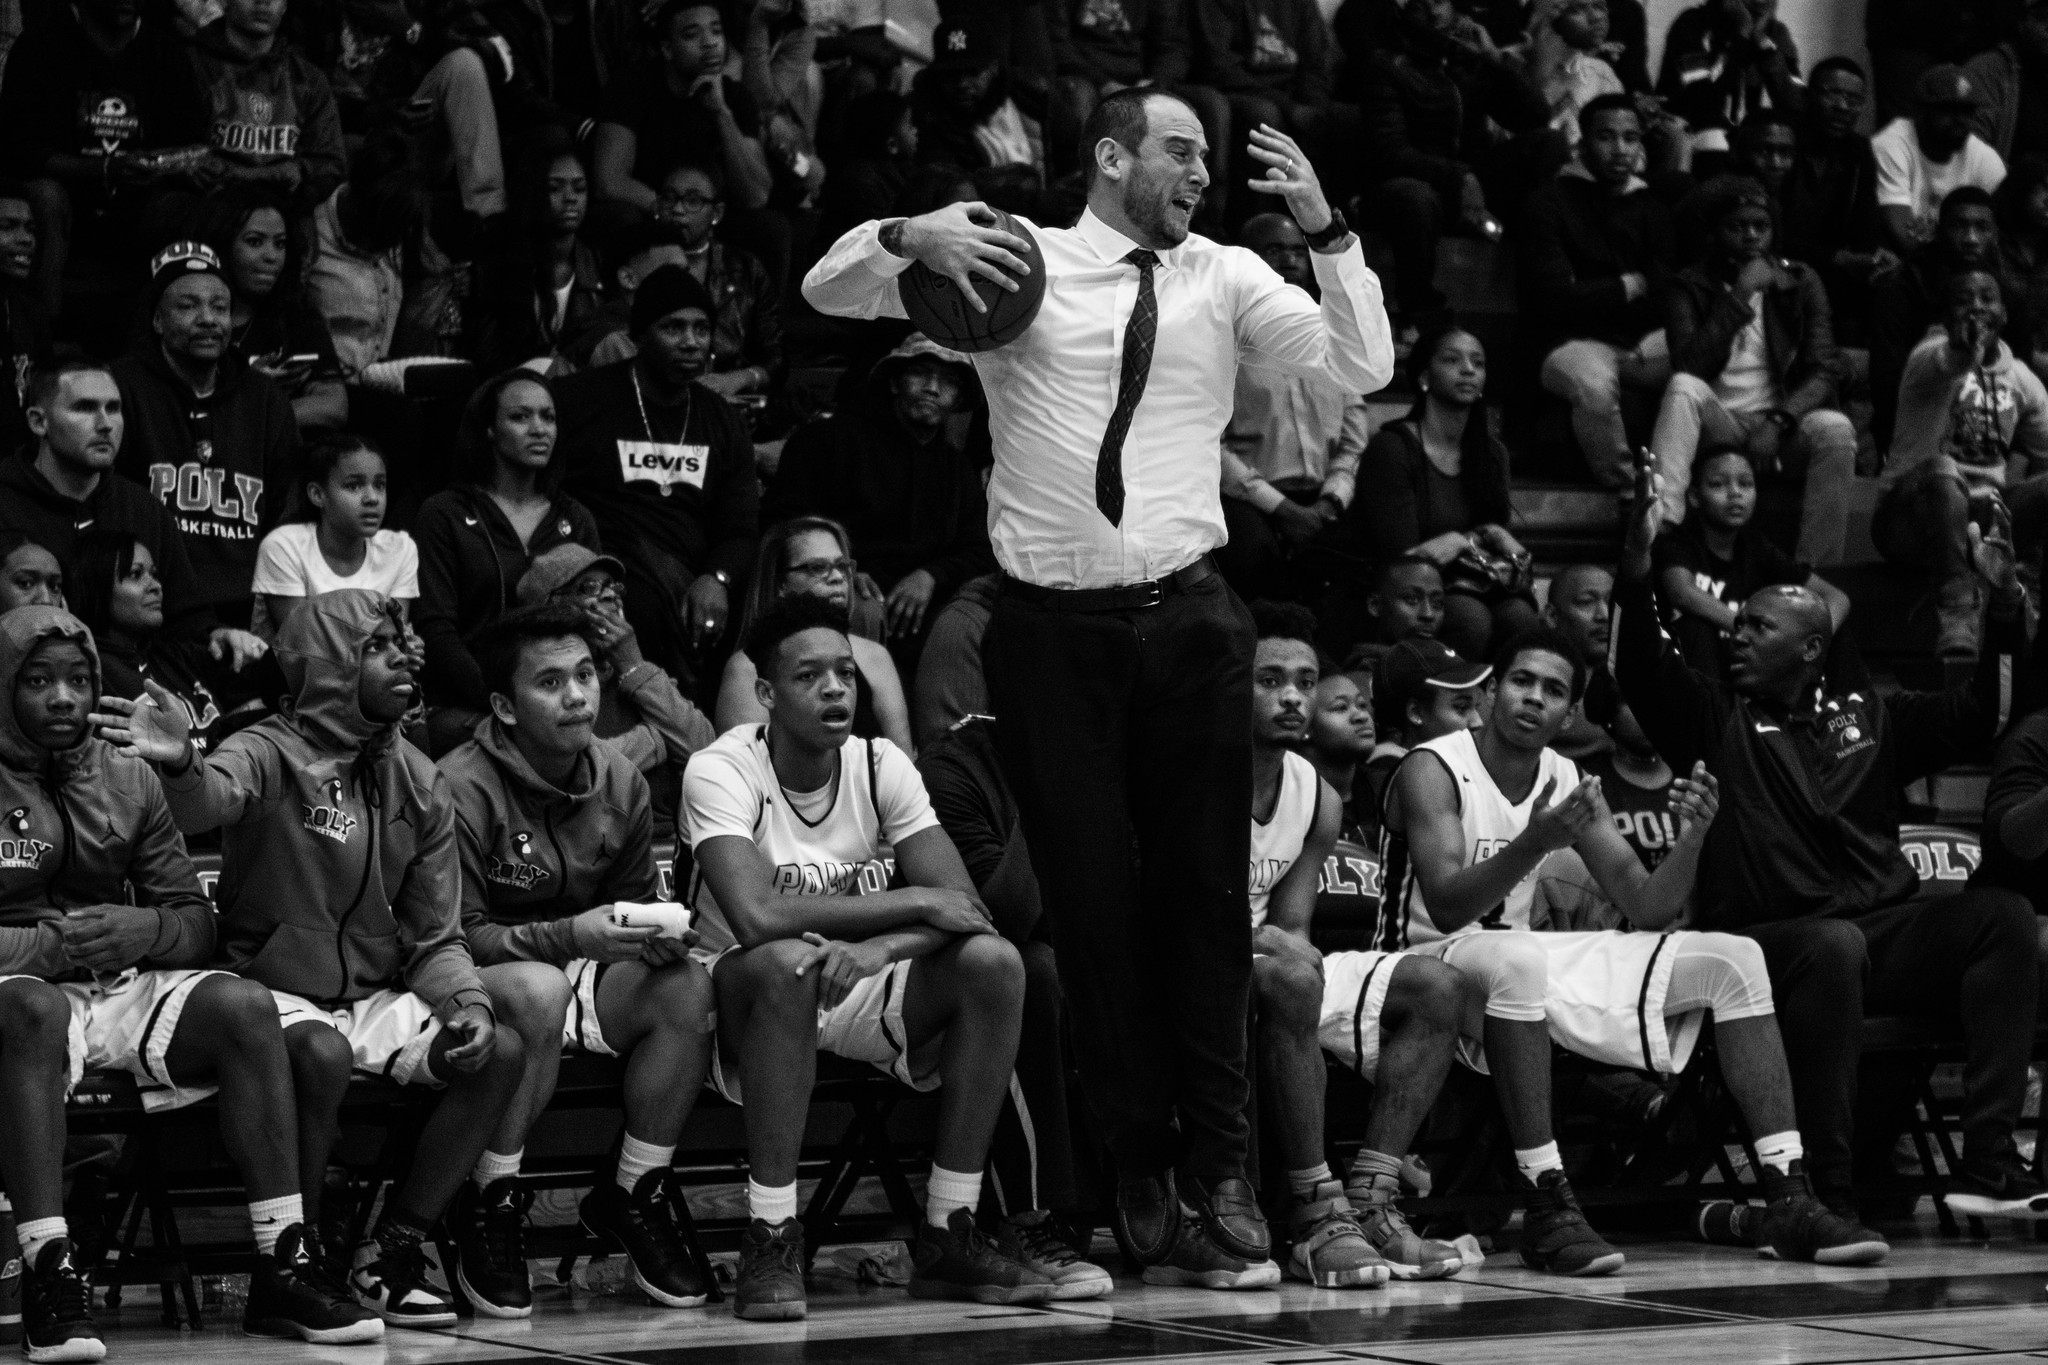 Coach Sam angrily jumps after a questionable call during a game against Chicago's Simeon Academy.  Photo Credit: City Paper, Reginald Thomas II